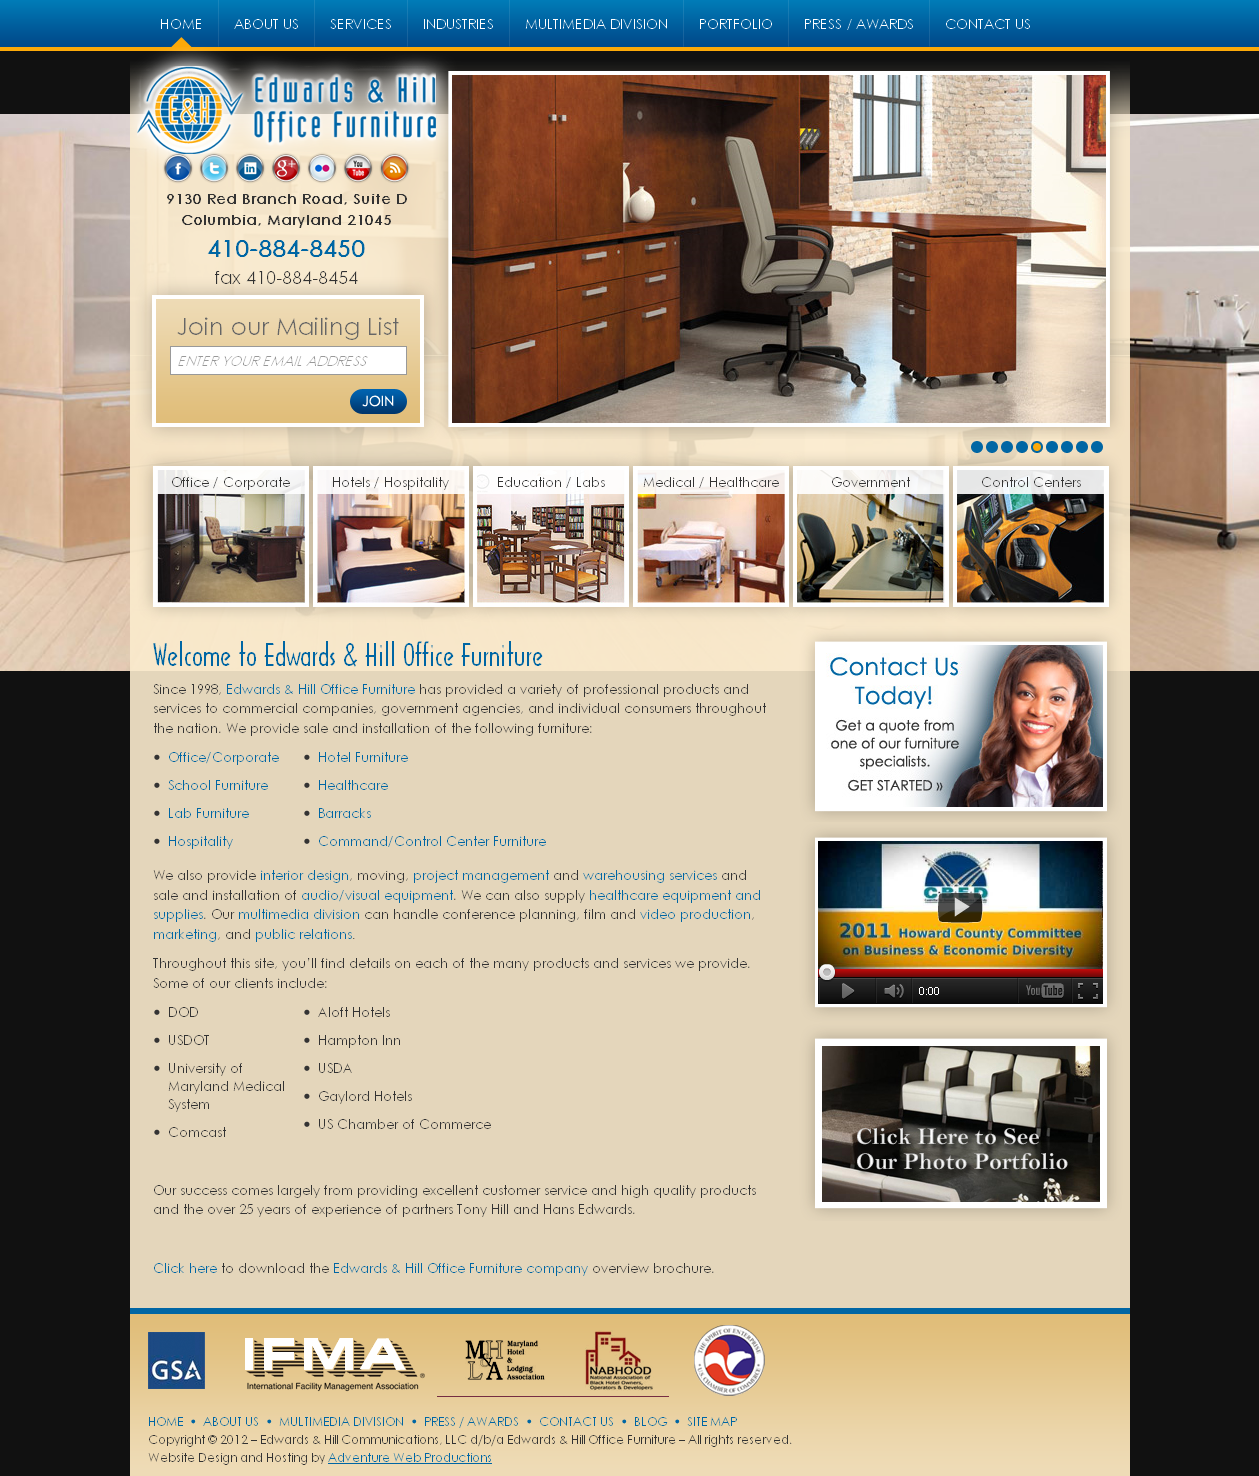 Adventure Web Productions has recently launched Edwards & Hill Office Furniture's new live site!